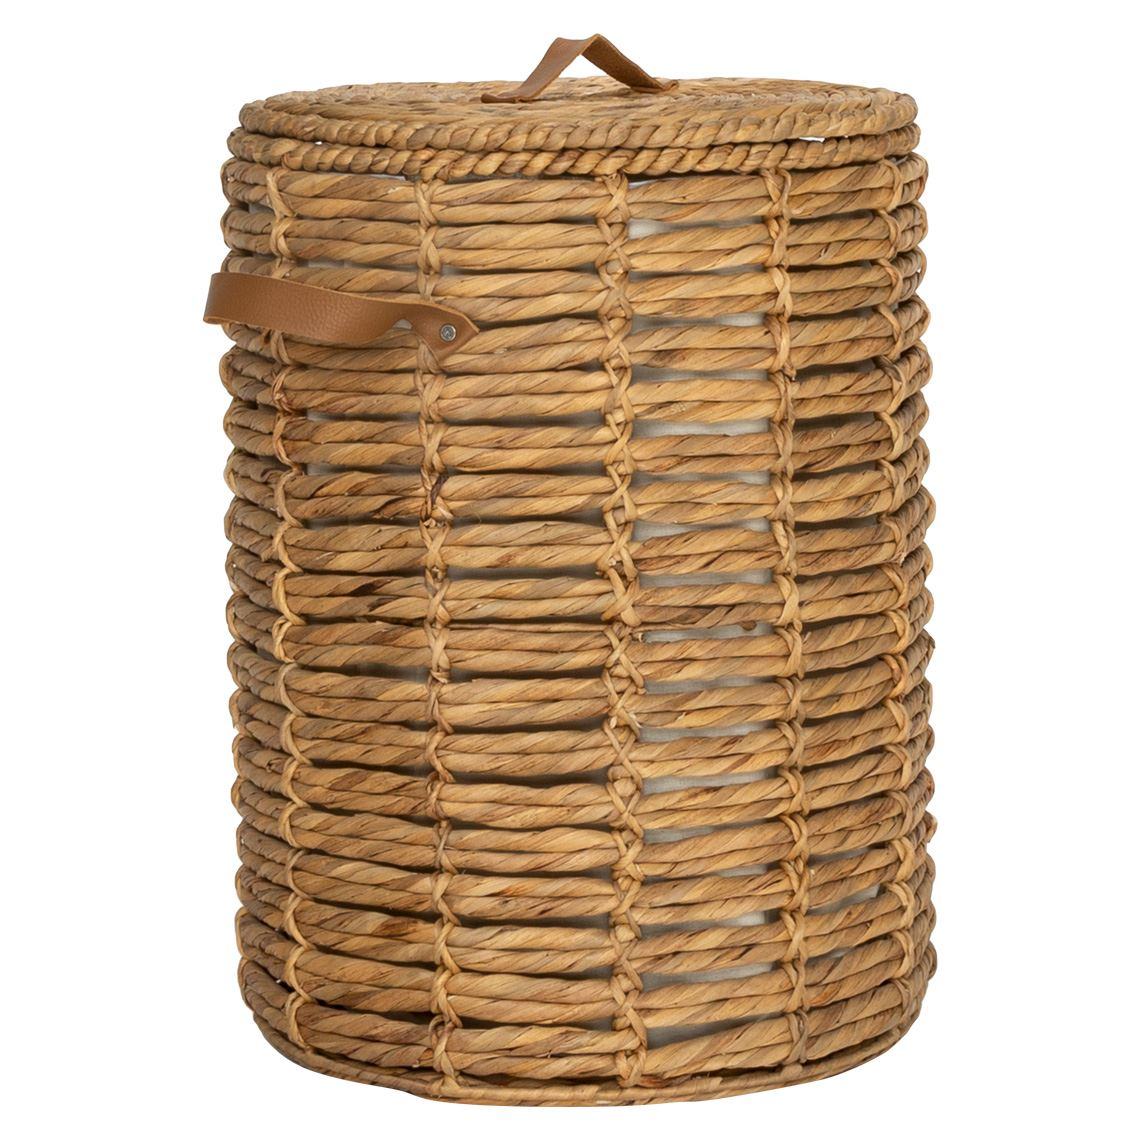 Waslin Laundry Hamper Size W 44cm x D 44cm x H 60cm in Natural Freedom